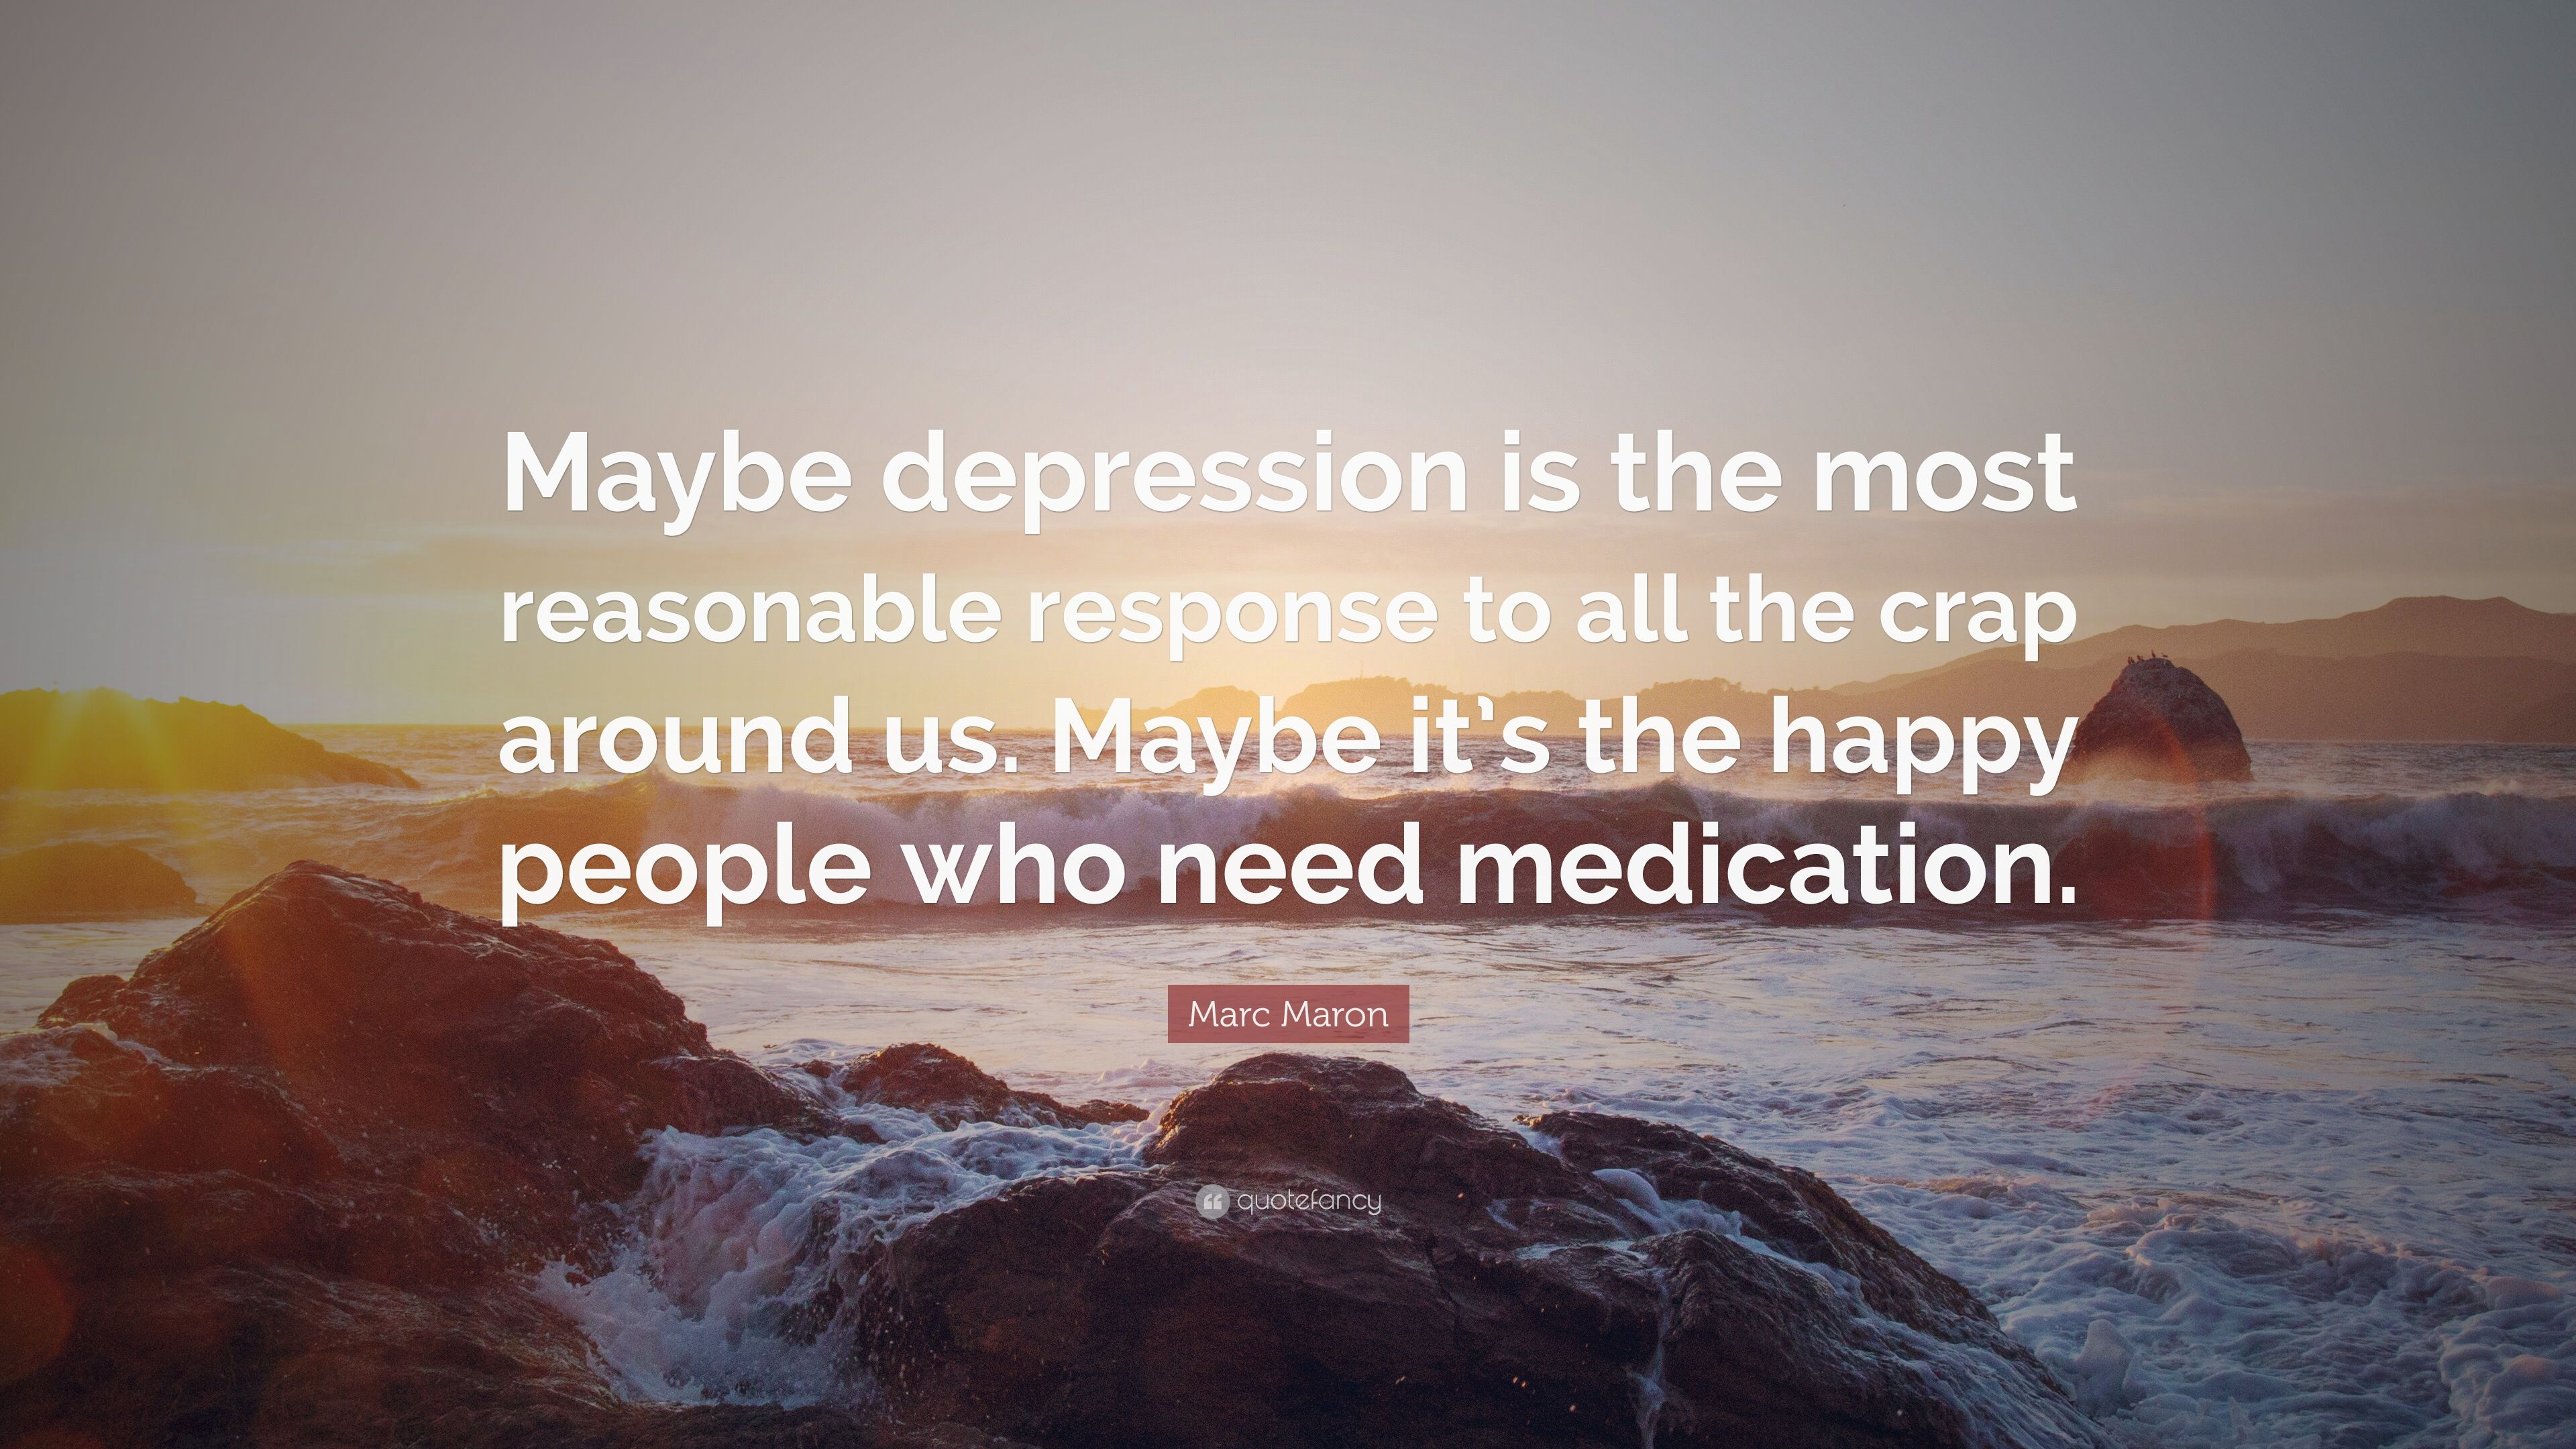 Image of: Marc Maron Quote maybe Depression Is The Most Reasonable Response To All The Crap Quotefancy Marc Maron Quote maybe Depression Is The Most Reasonable Response